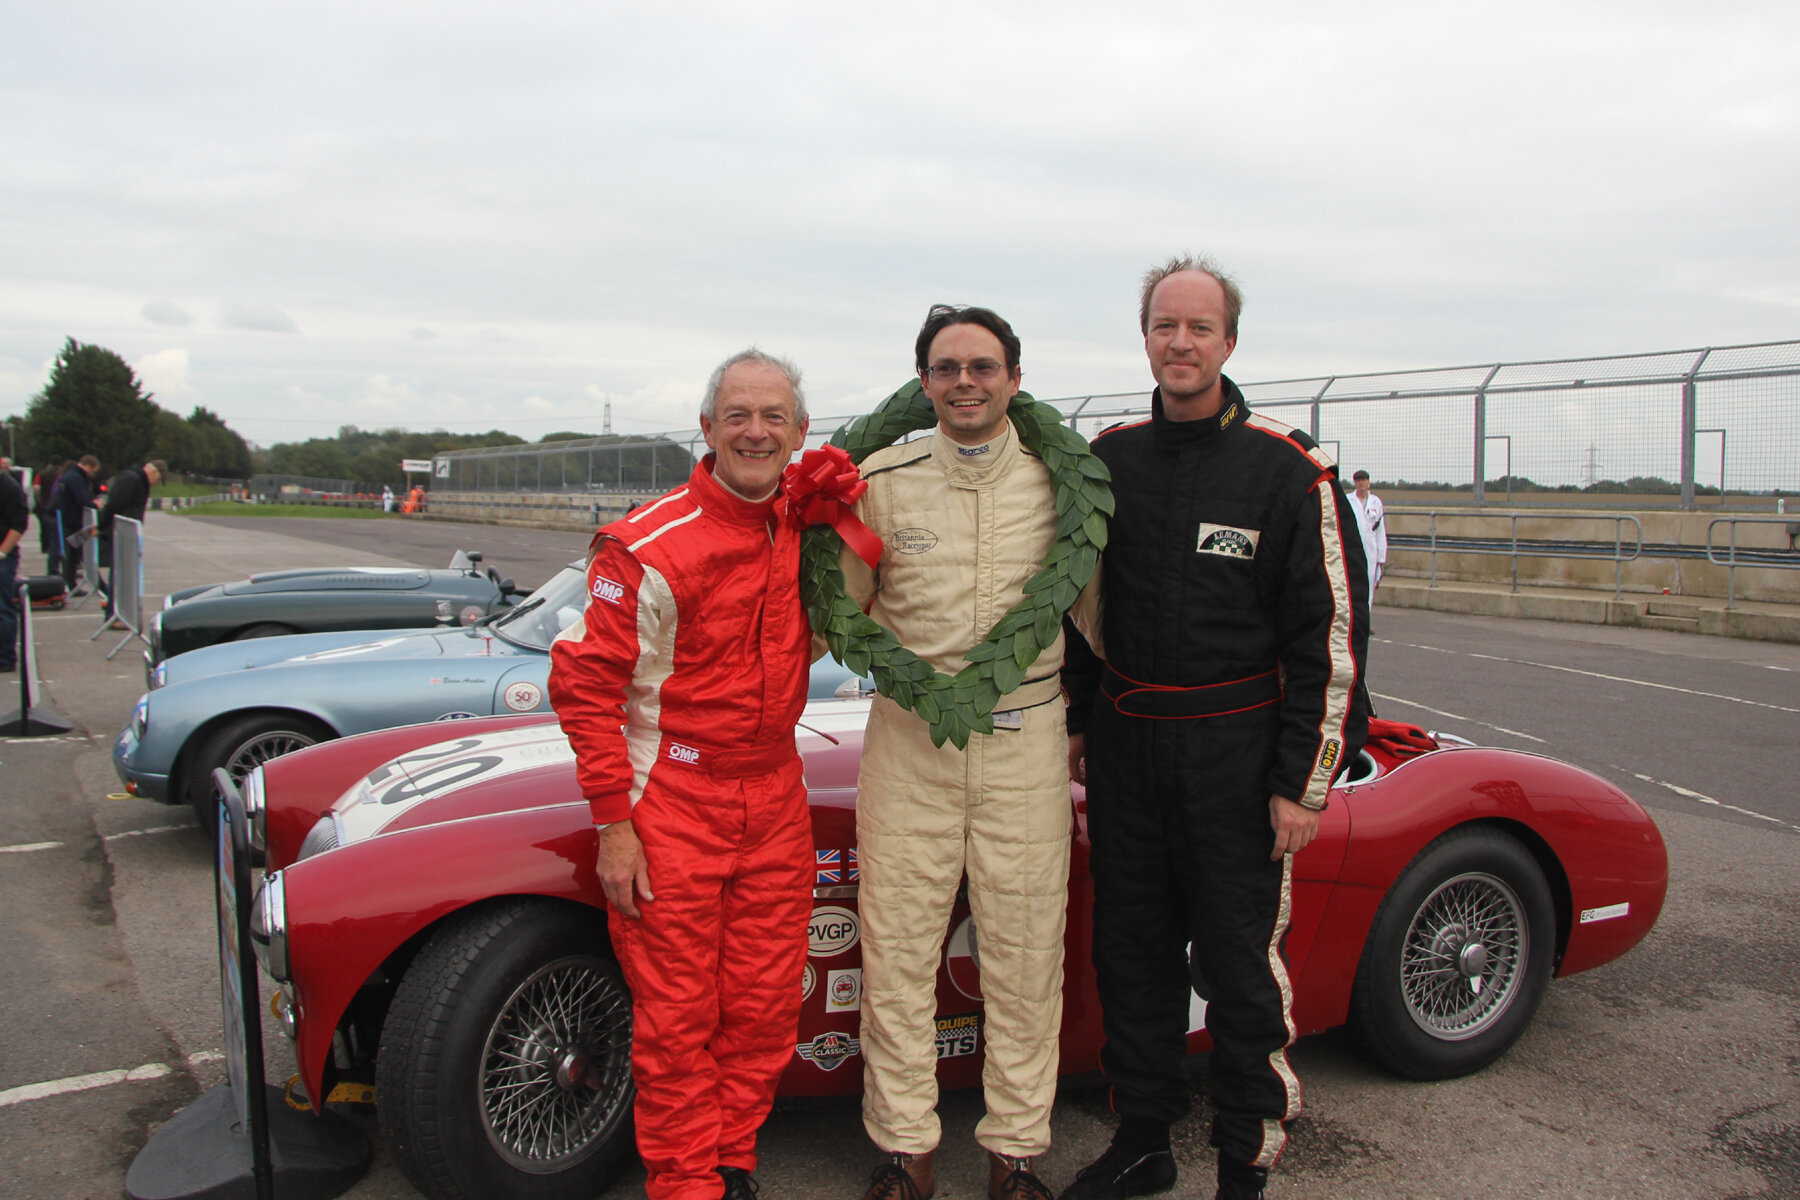 Brian Arculus, Jonathan Abecassis & Robin Pearce celebrating their fine race  Photo - Pat Arculus, Tripos Media